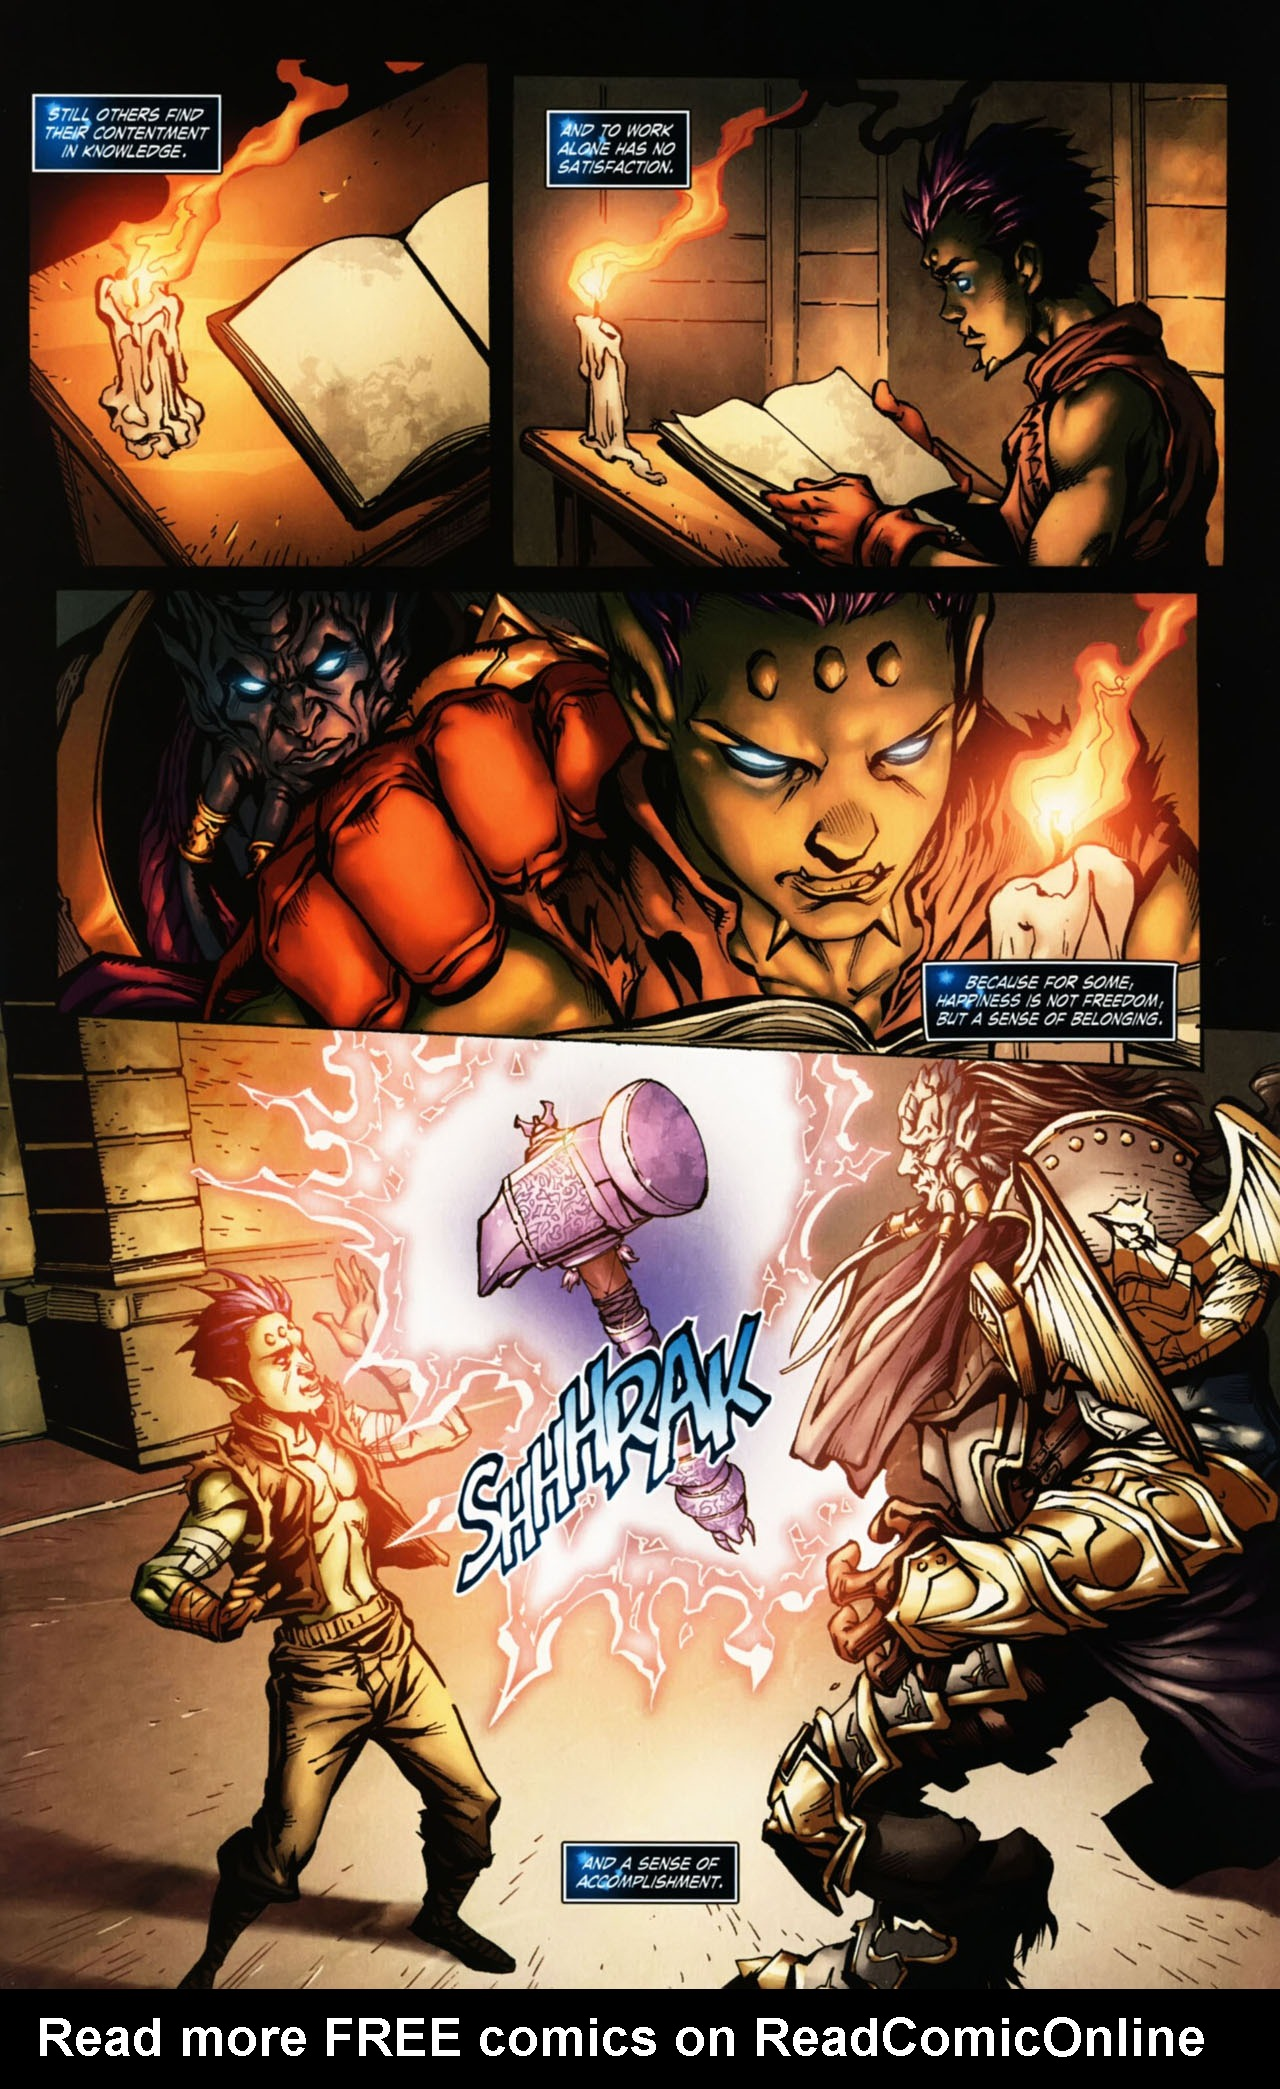 Read online World of Warcraft Special comic -  Issue # Full - 10